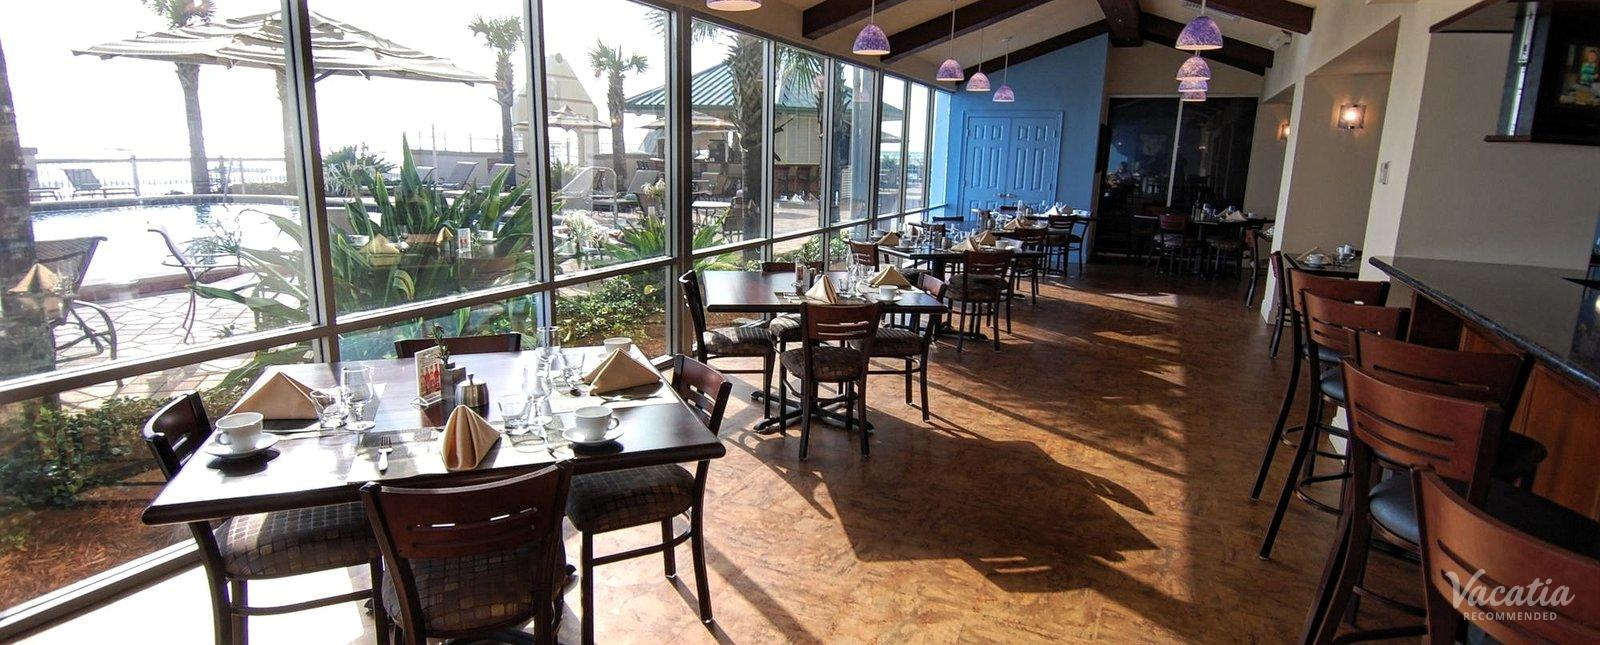 Daytona Beach Resort & Conference Center Oceanfront Restaurant